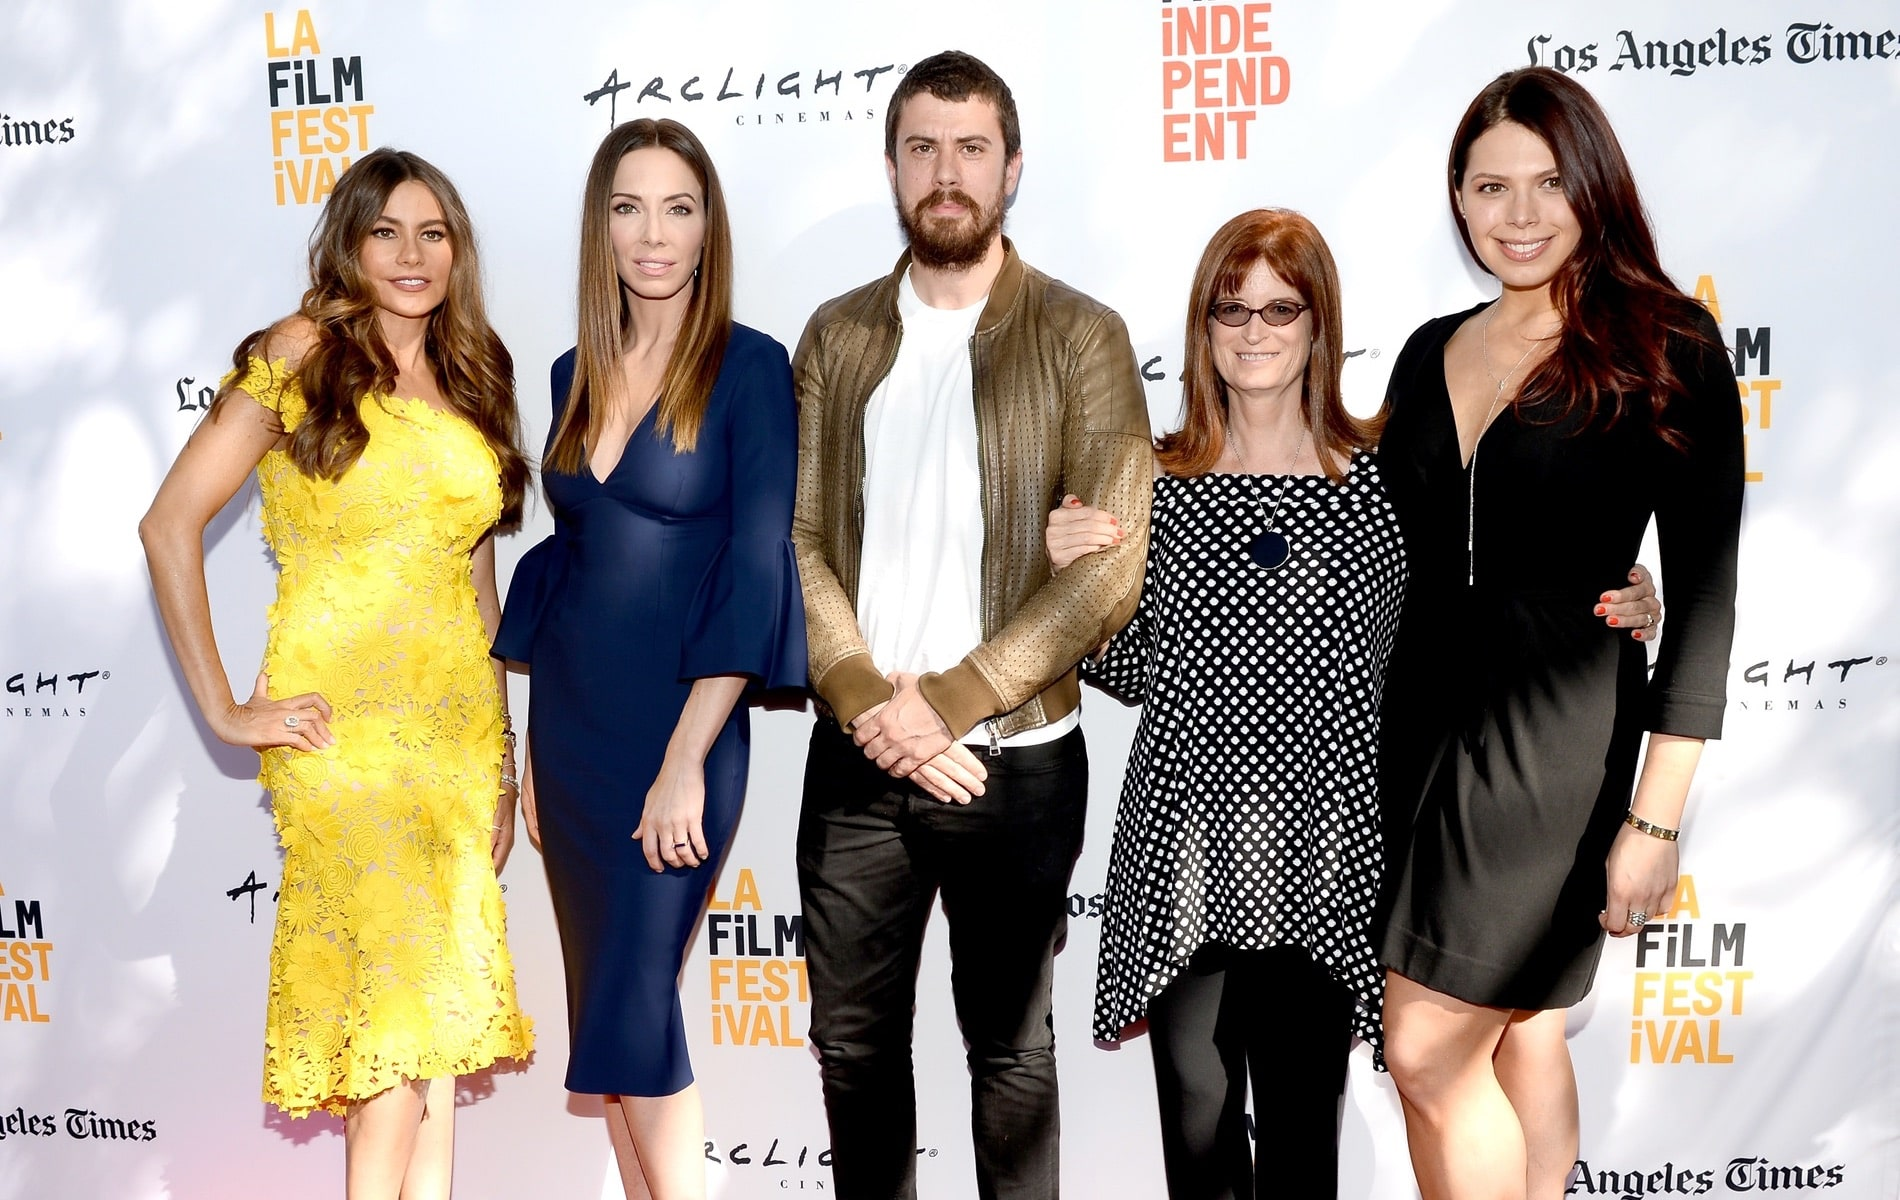 LAFF, LAFF2017, LAFILMFEST17, Sofia Vergara, Whitney Cummings, Toby Kebbell, Louann Brizendine, Erika Olde, The Female Brain, Los Angeles Film Festival, Arclight Cinemas Culver City, Culver City, California